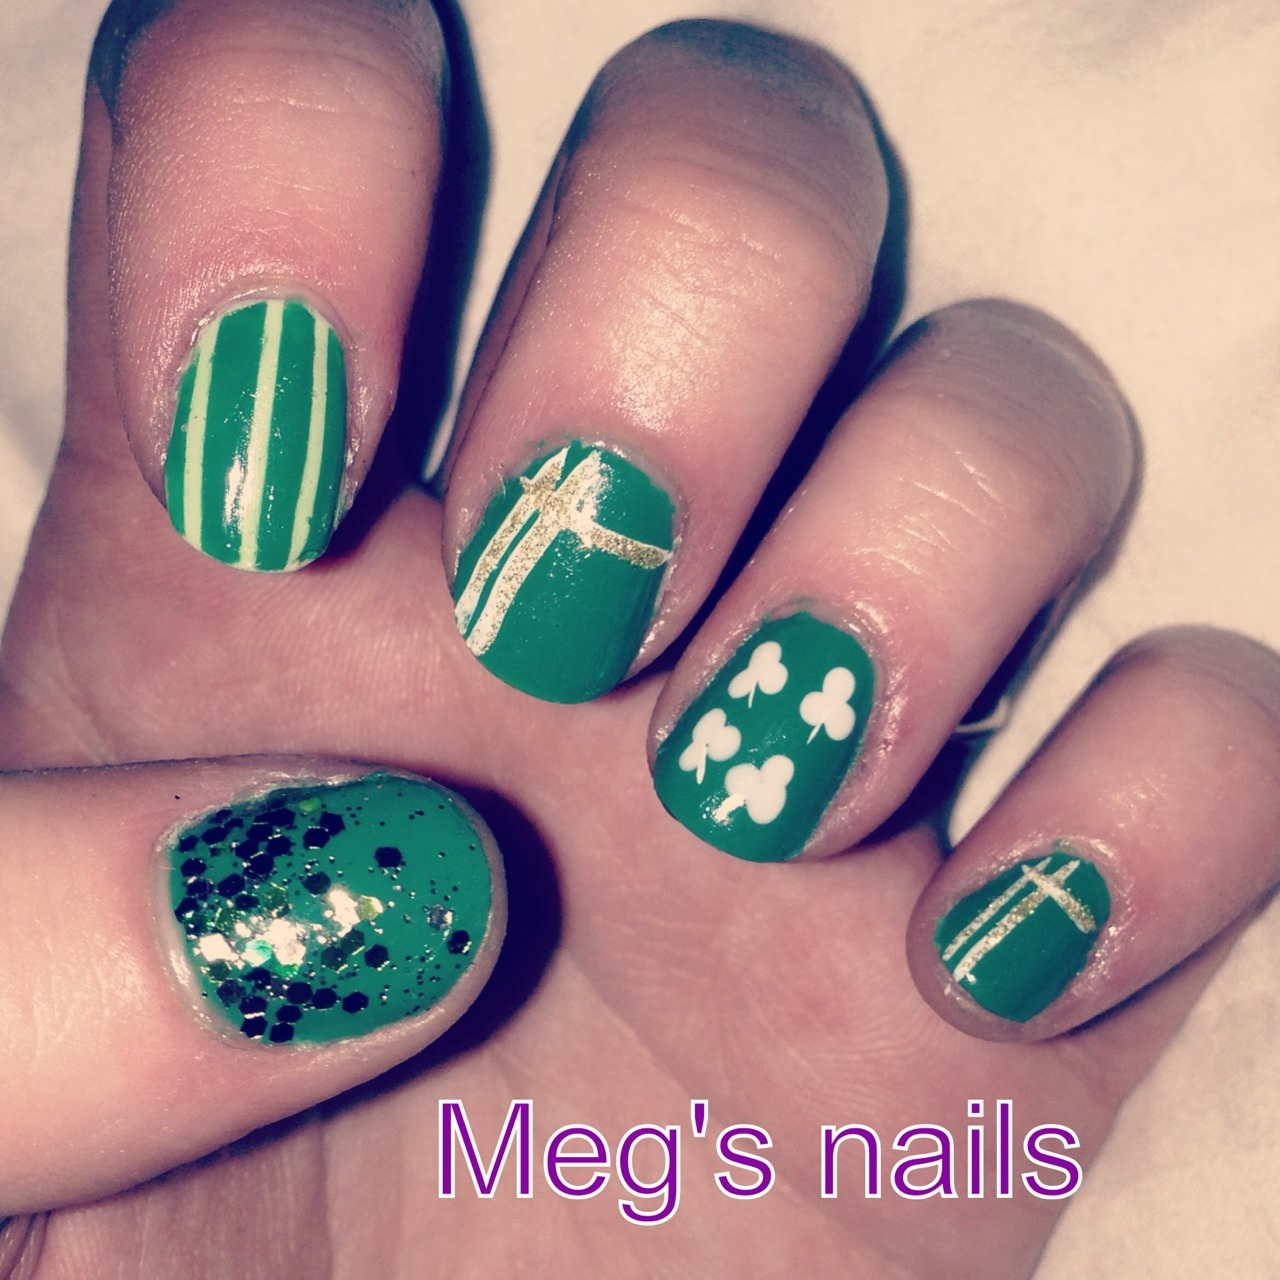 Some manis I did for St. Patty's Day!